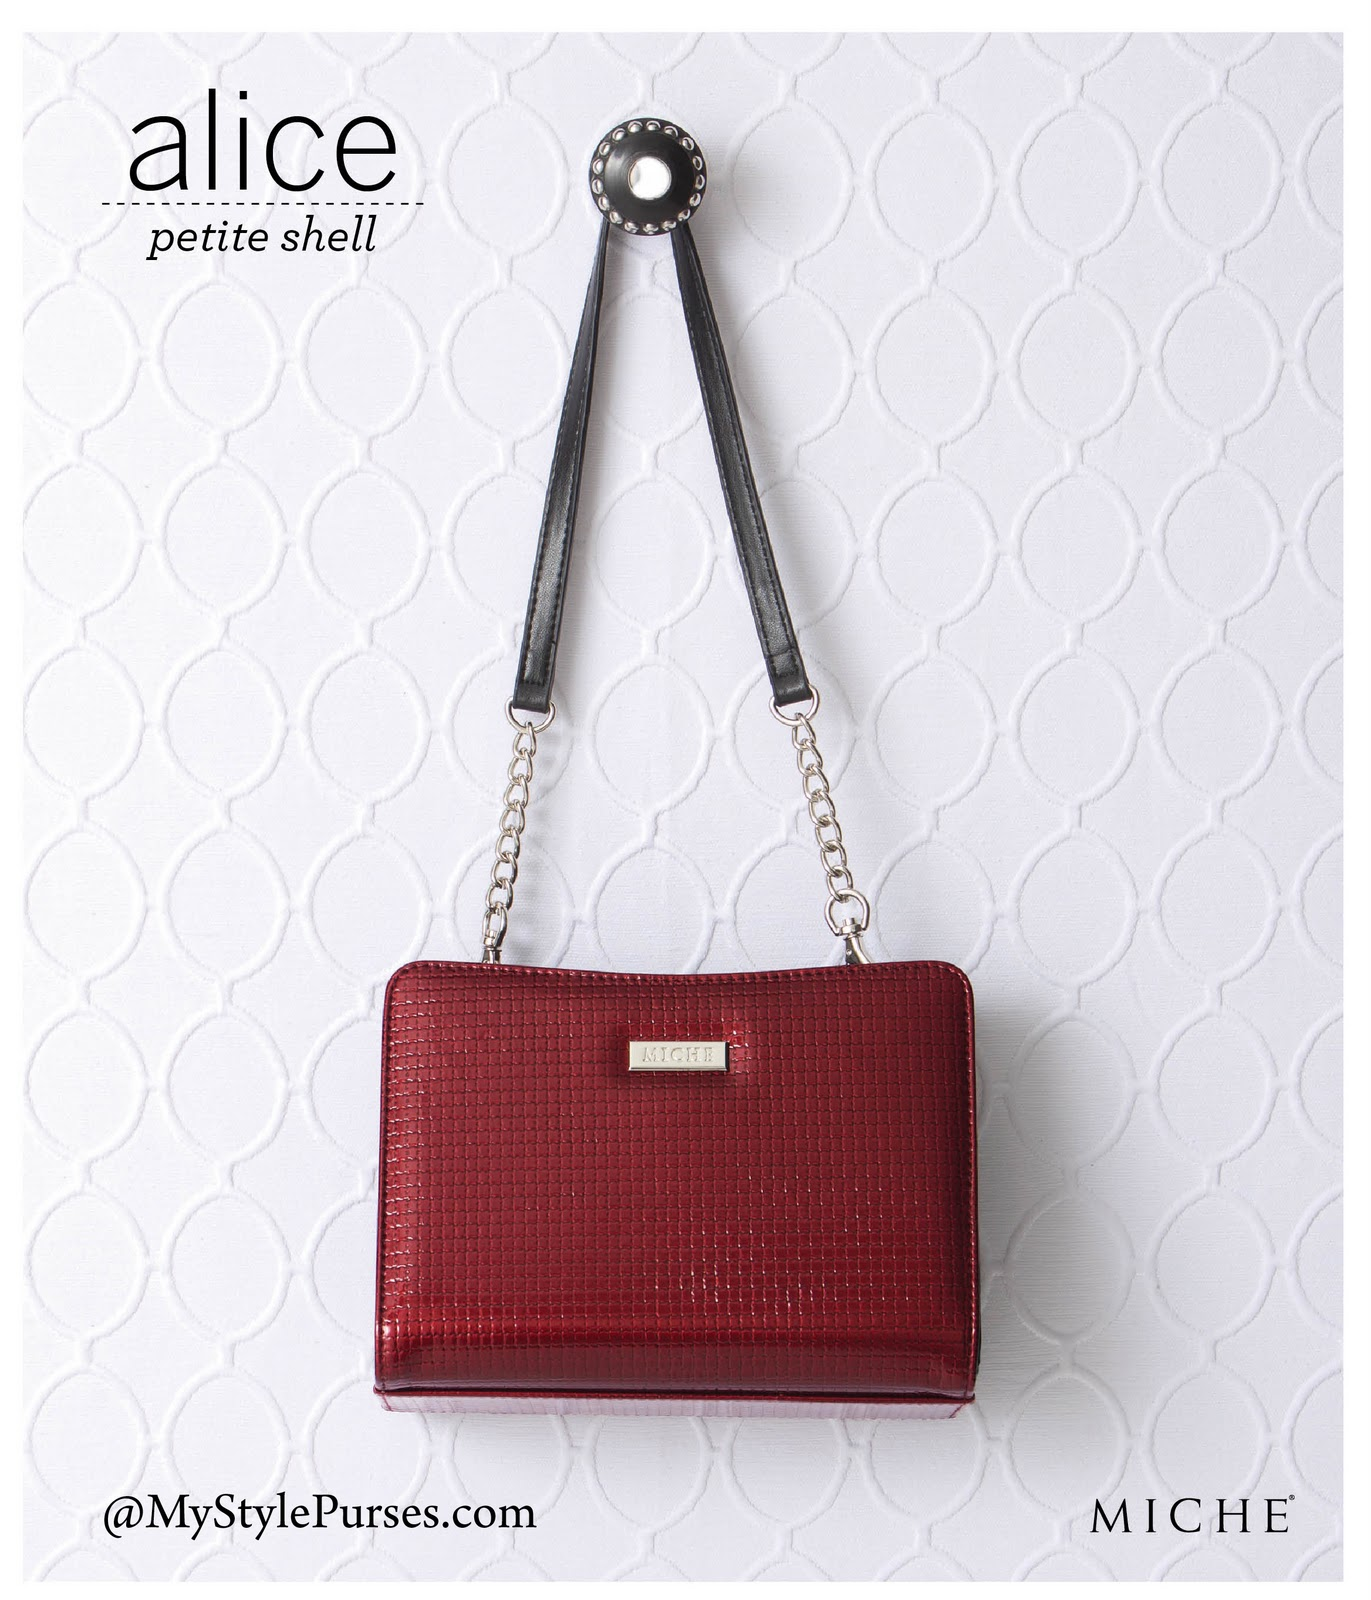 I Just Had To Get This Stunning Brick Red Alice Pee Shell Brighten Up My Black On Favorite Winter Styles And The Will Definitely Add